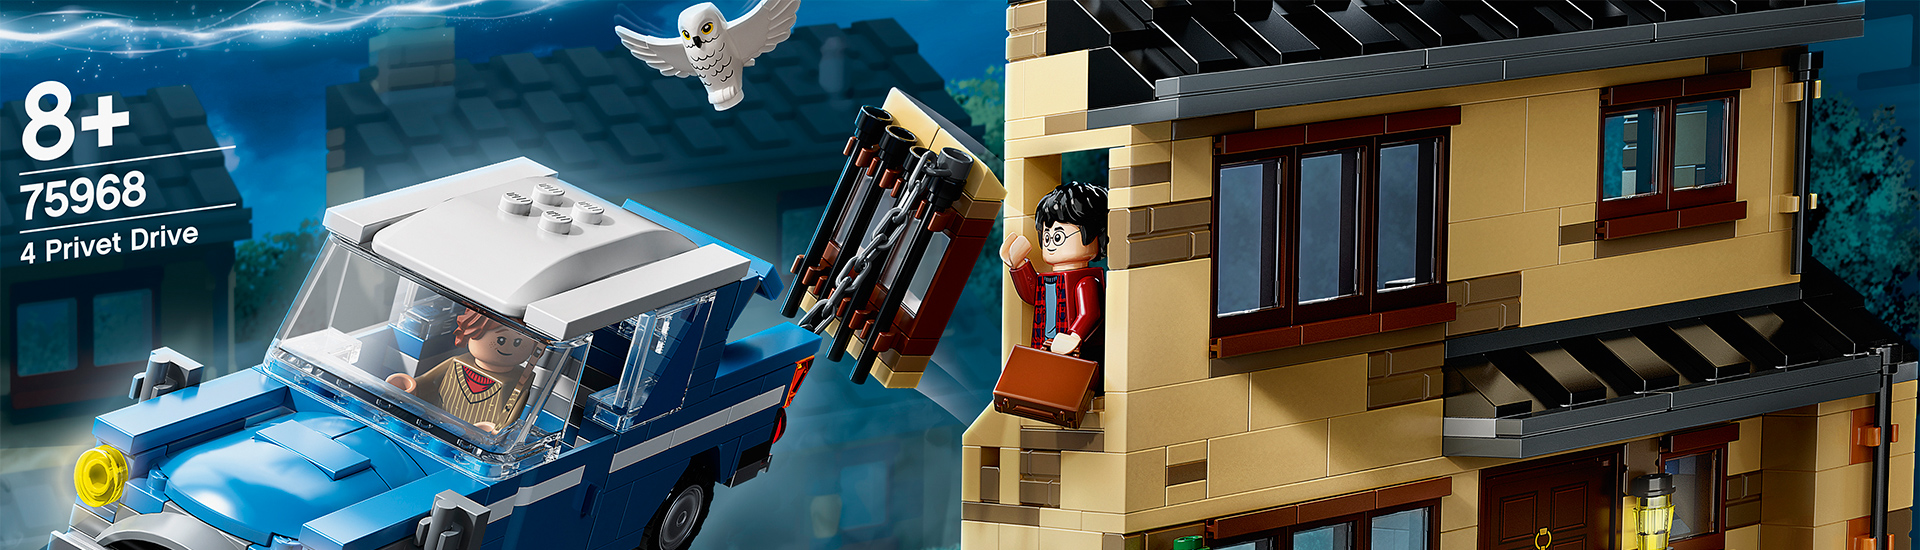 2020 Lego Harry Potter Sets Revealed Toysworld